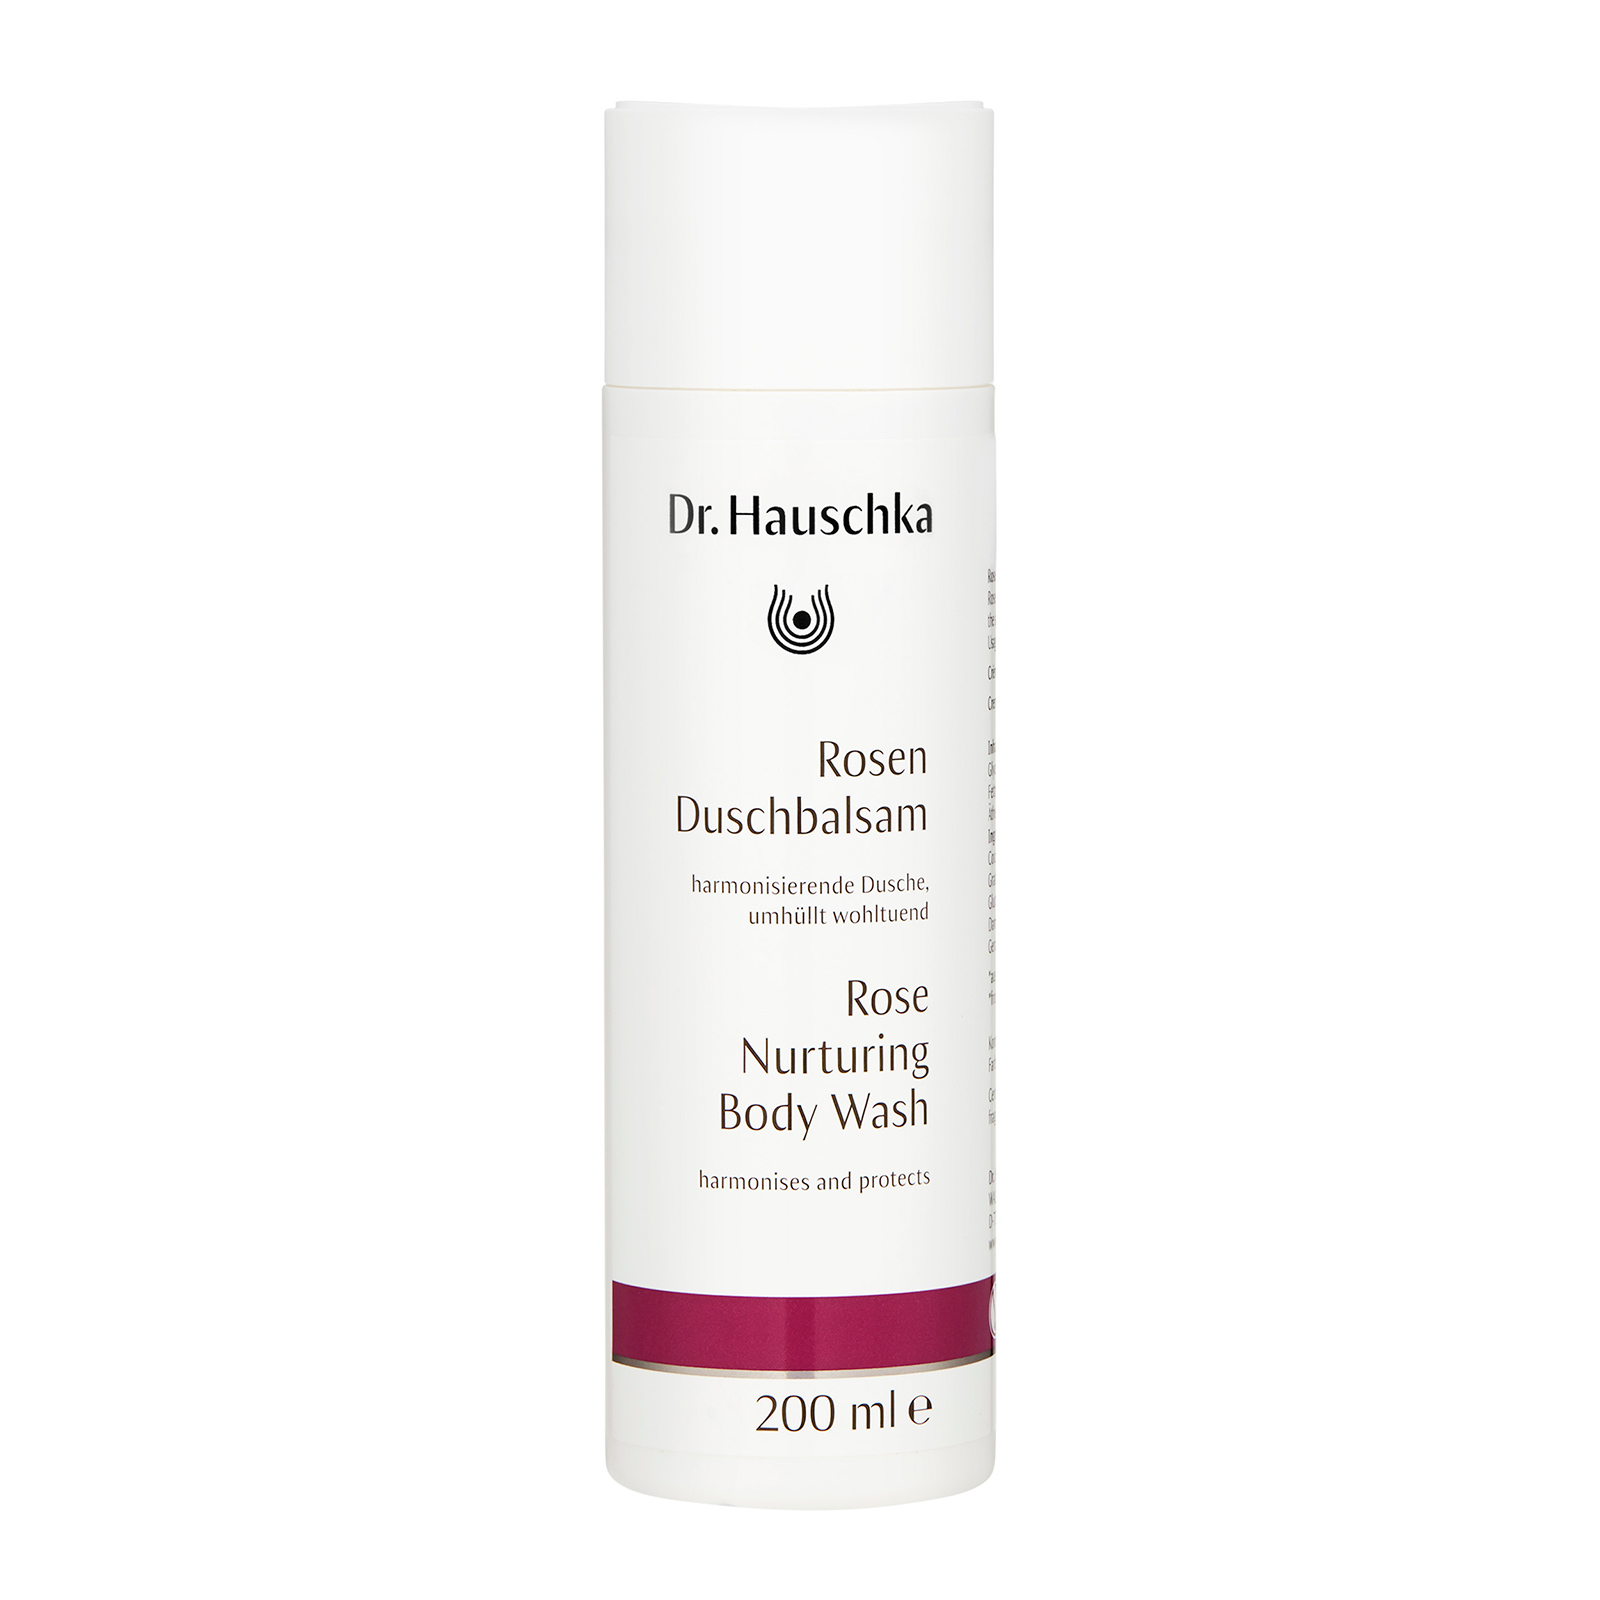 Dr. Hauschka  Rose Nurturing Body Wash 200ml, from Cosme-De.com